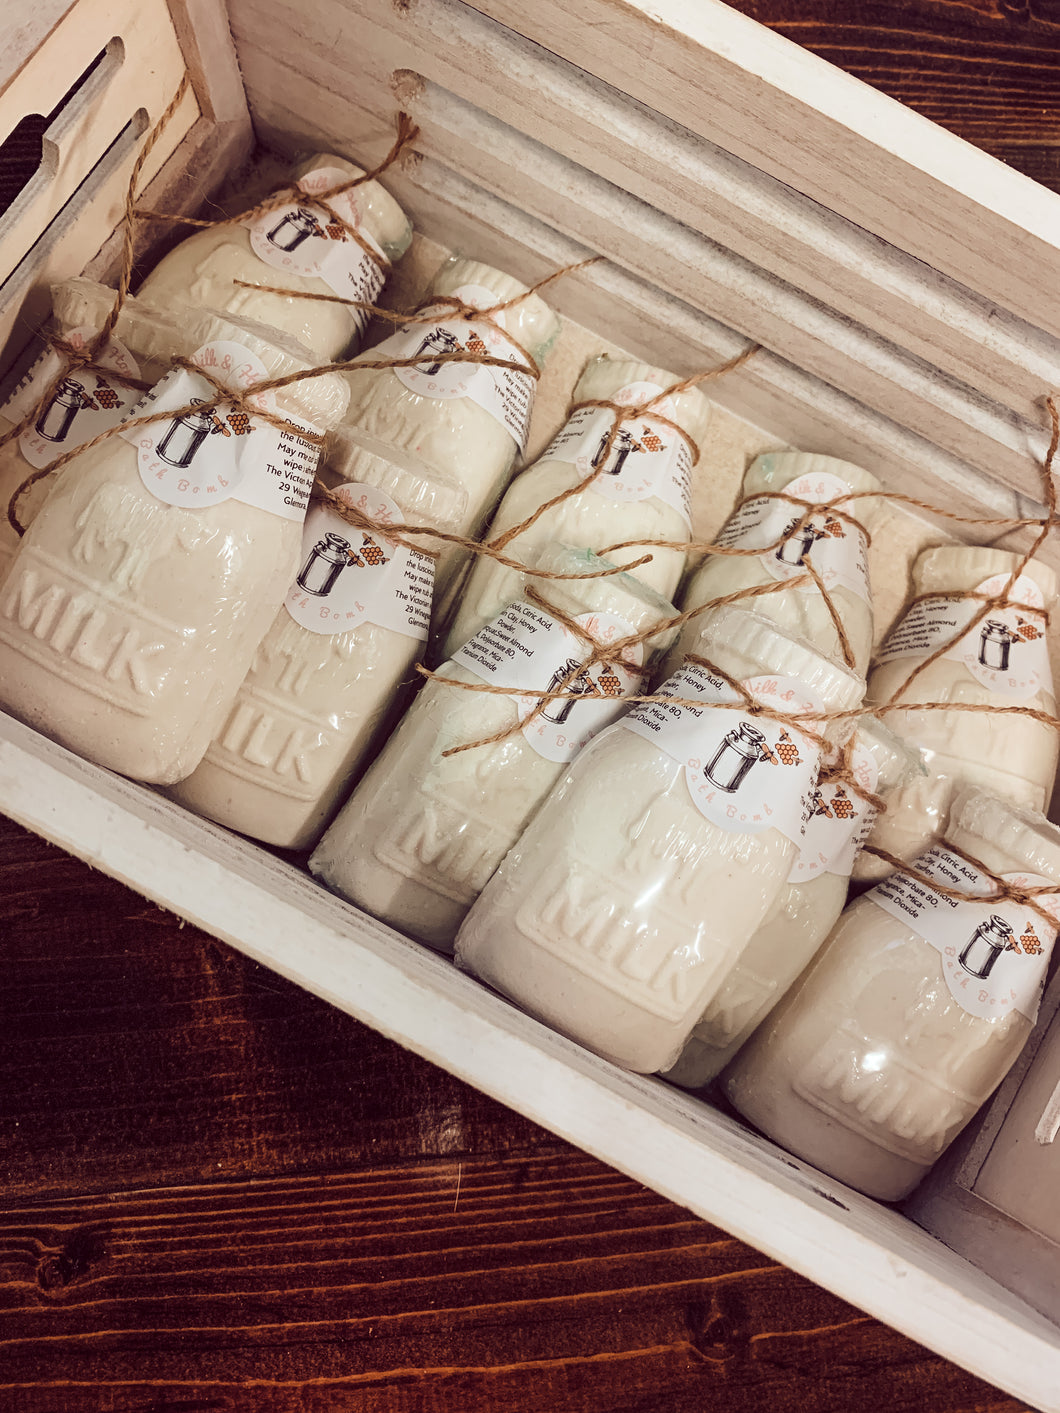 WS Oatmeal, Milk & Honey Milk Jug Bath Bombs